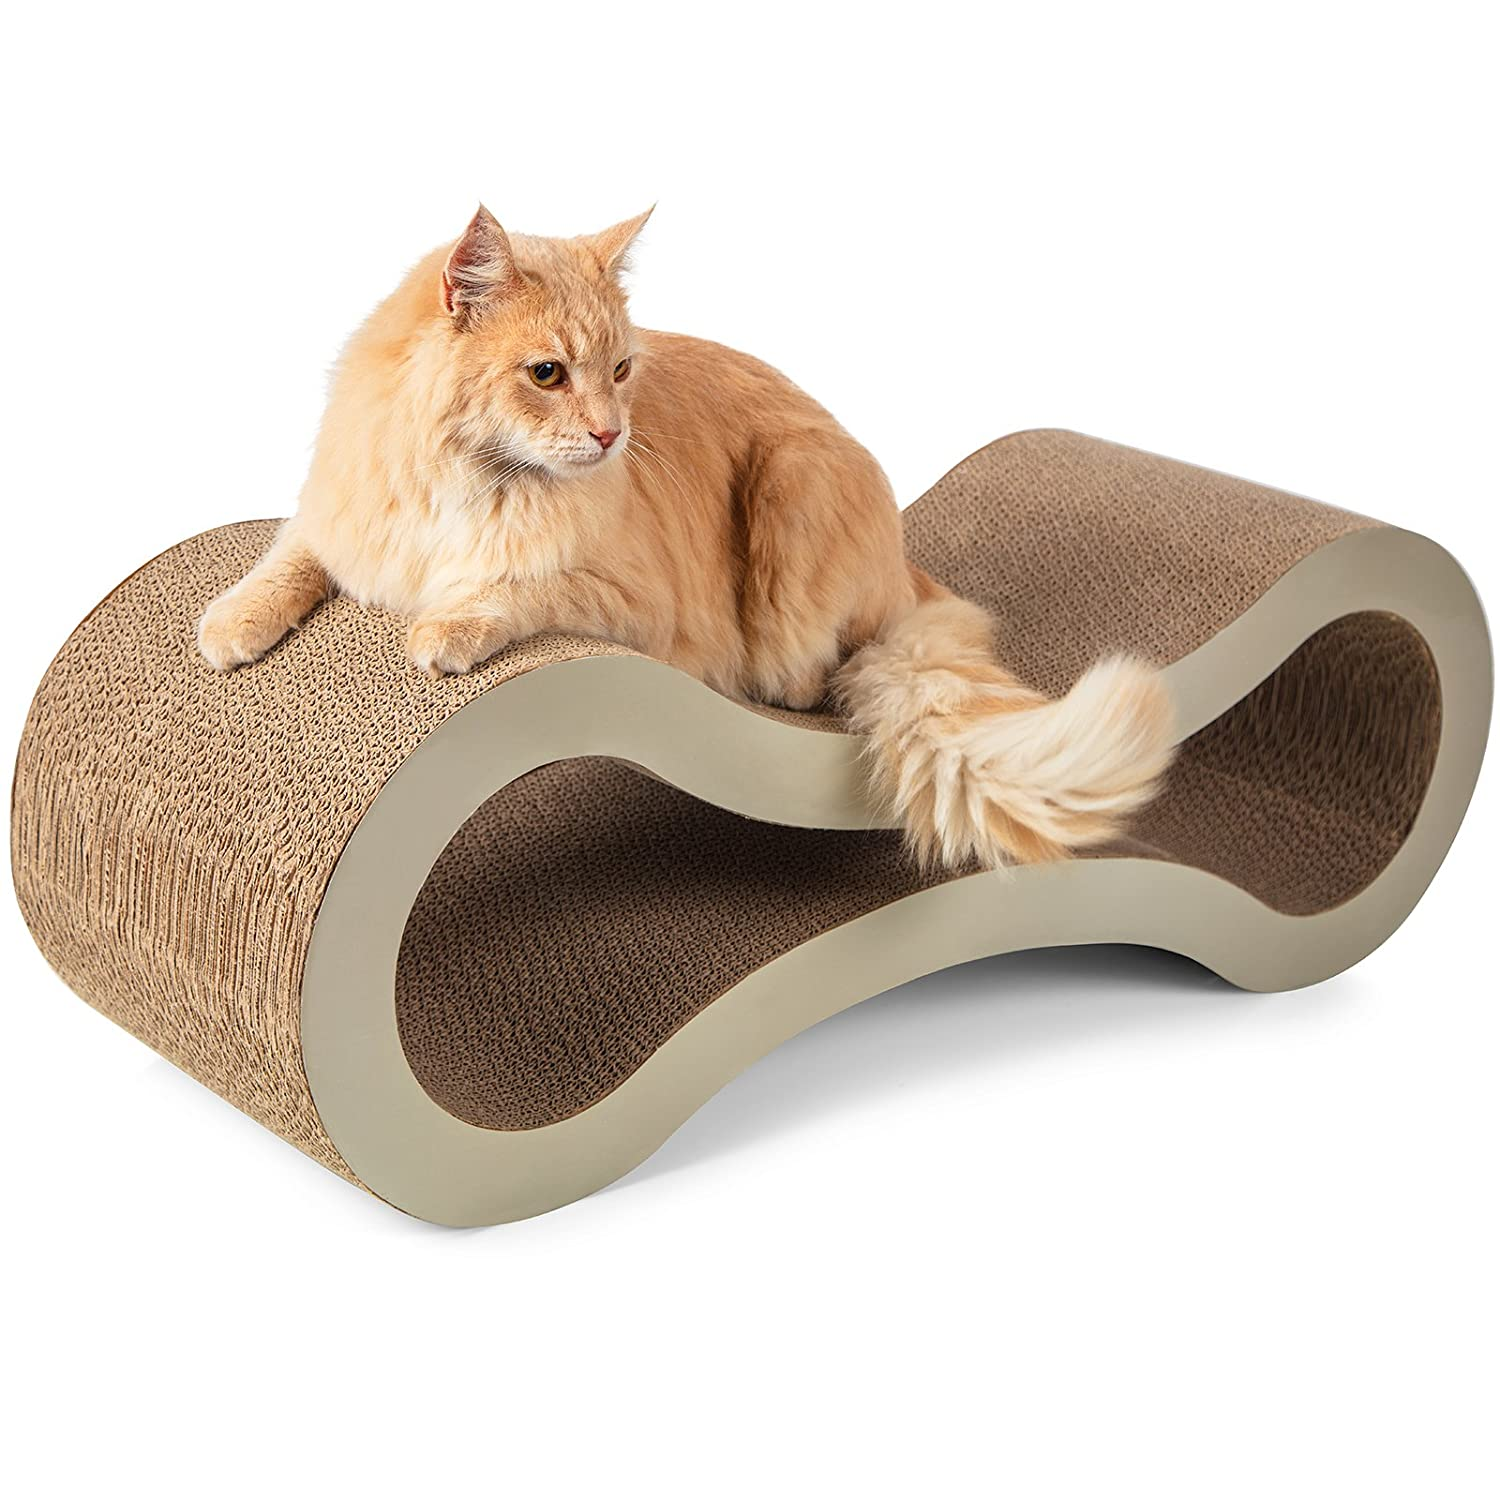 "Paws & Pals Cat Scratcher Lounge Post 32""x11""x11"" Inches Cardboard Furniture Construction with Catnip PTSL-01-LB"